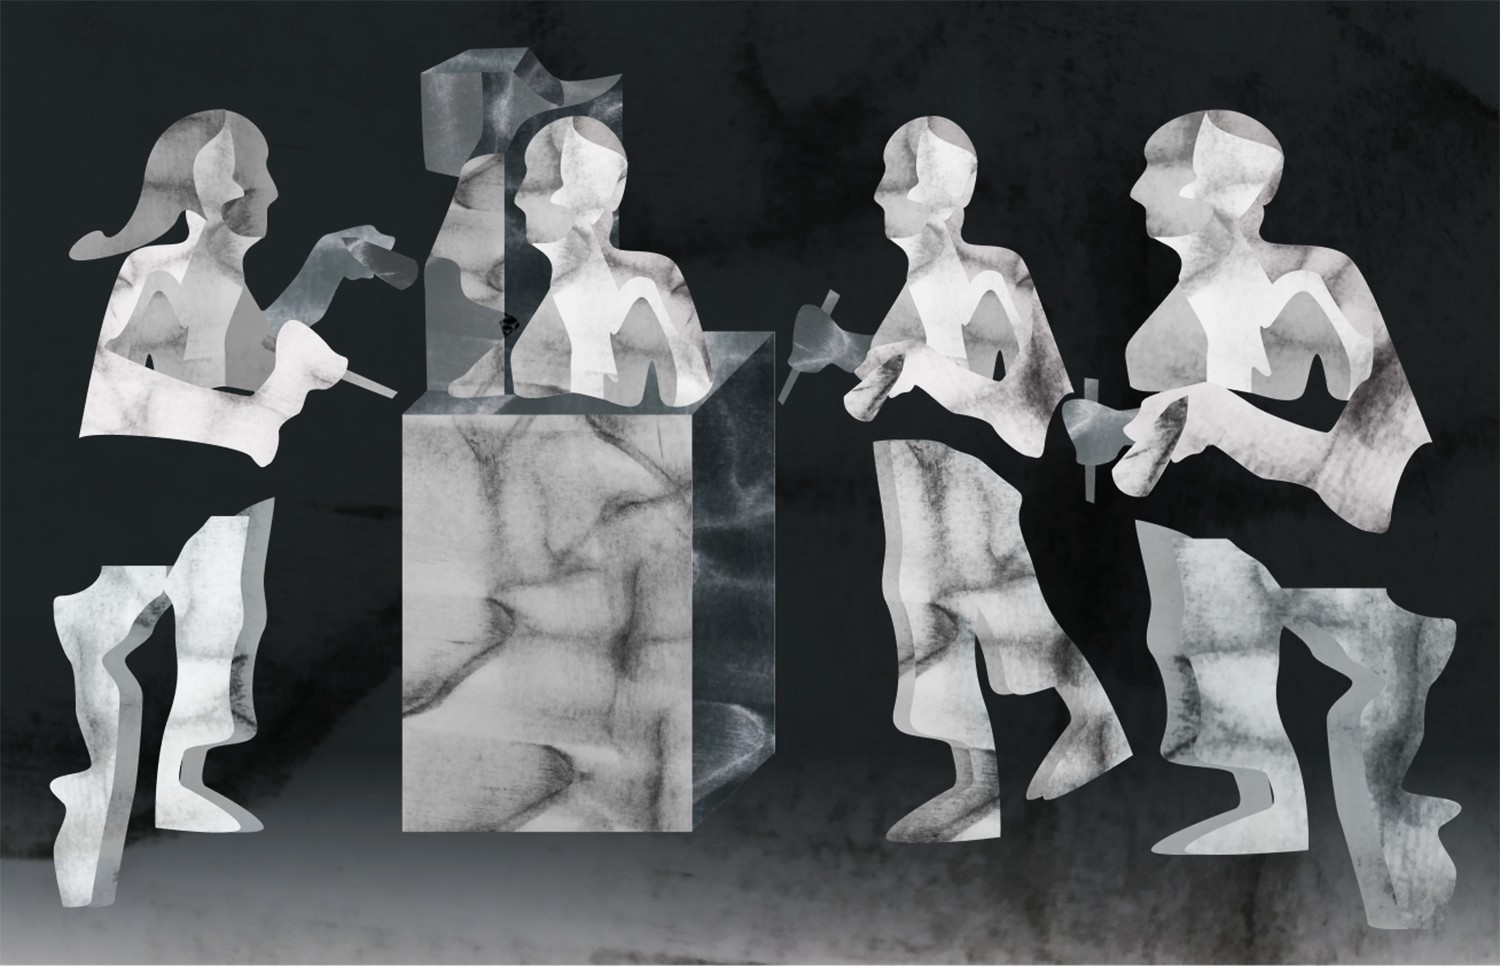 illustration of sculptors holding chisels and a partial bust emerging out of a granite block